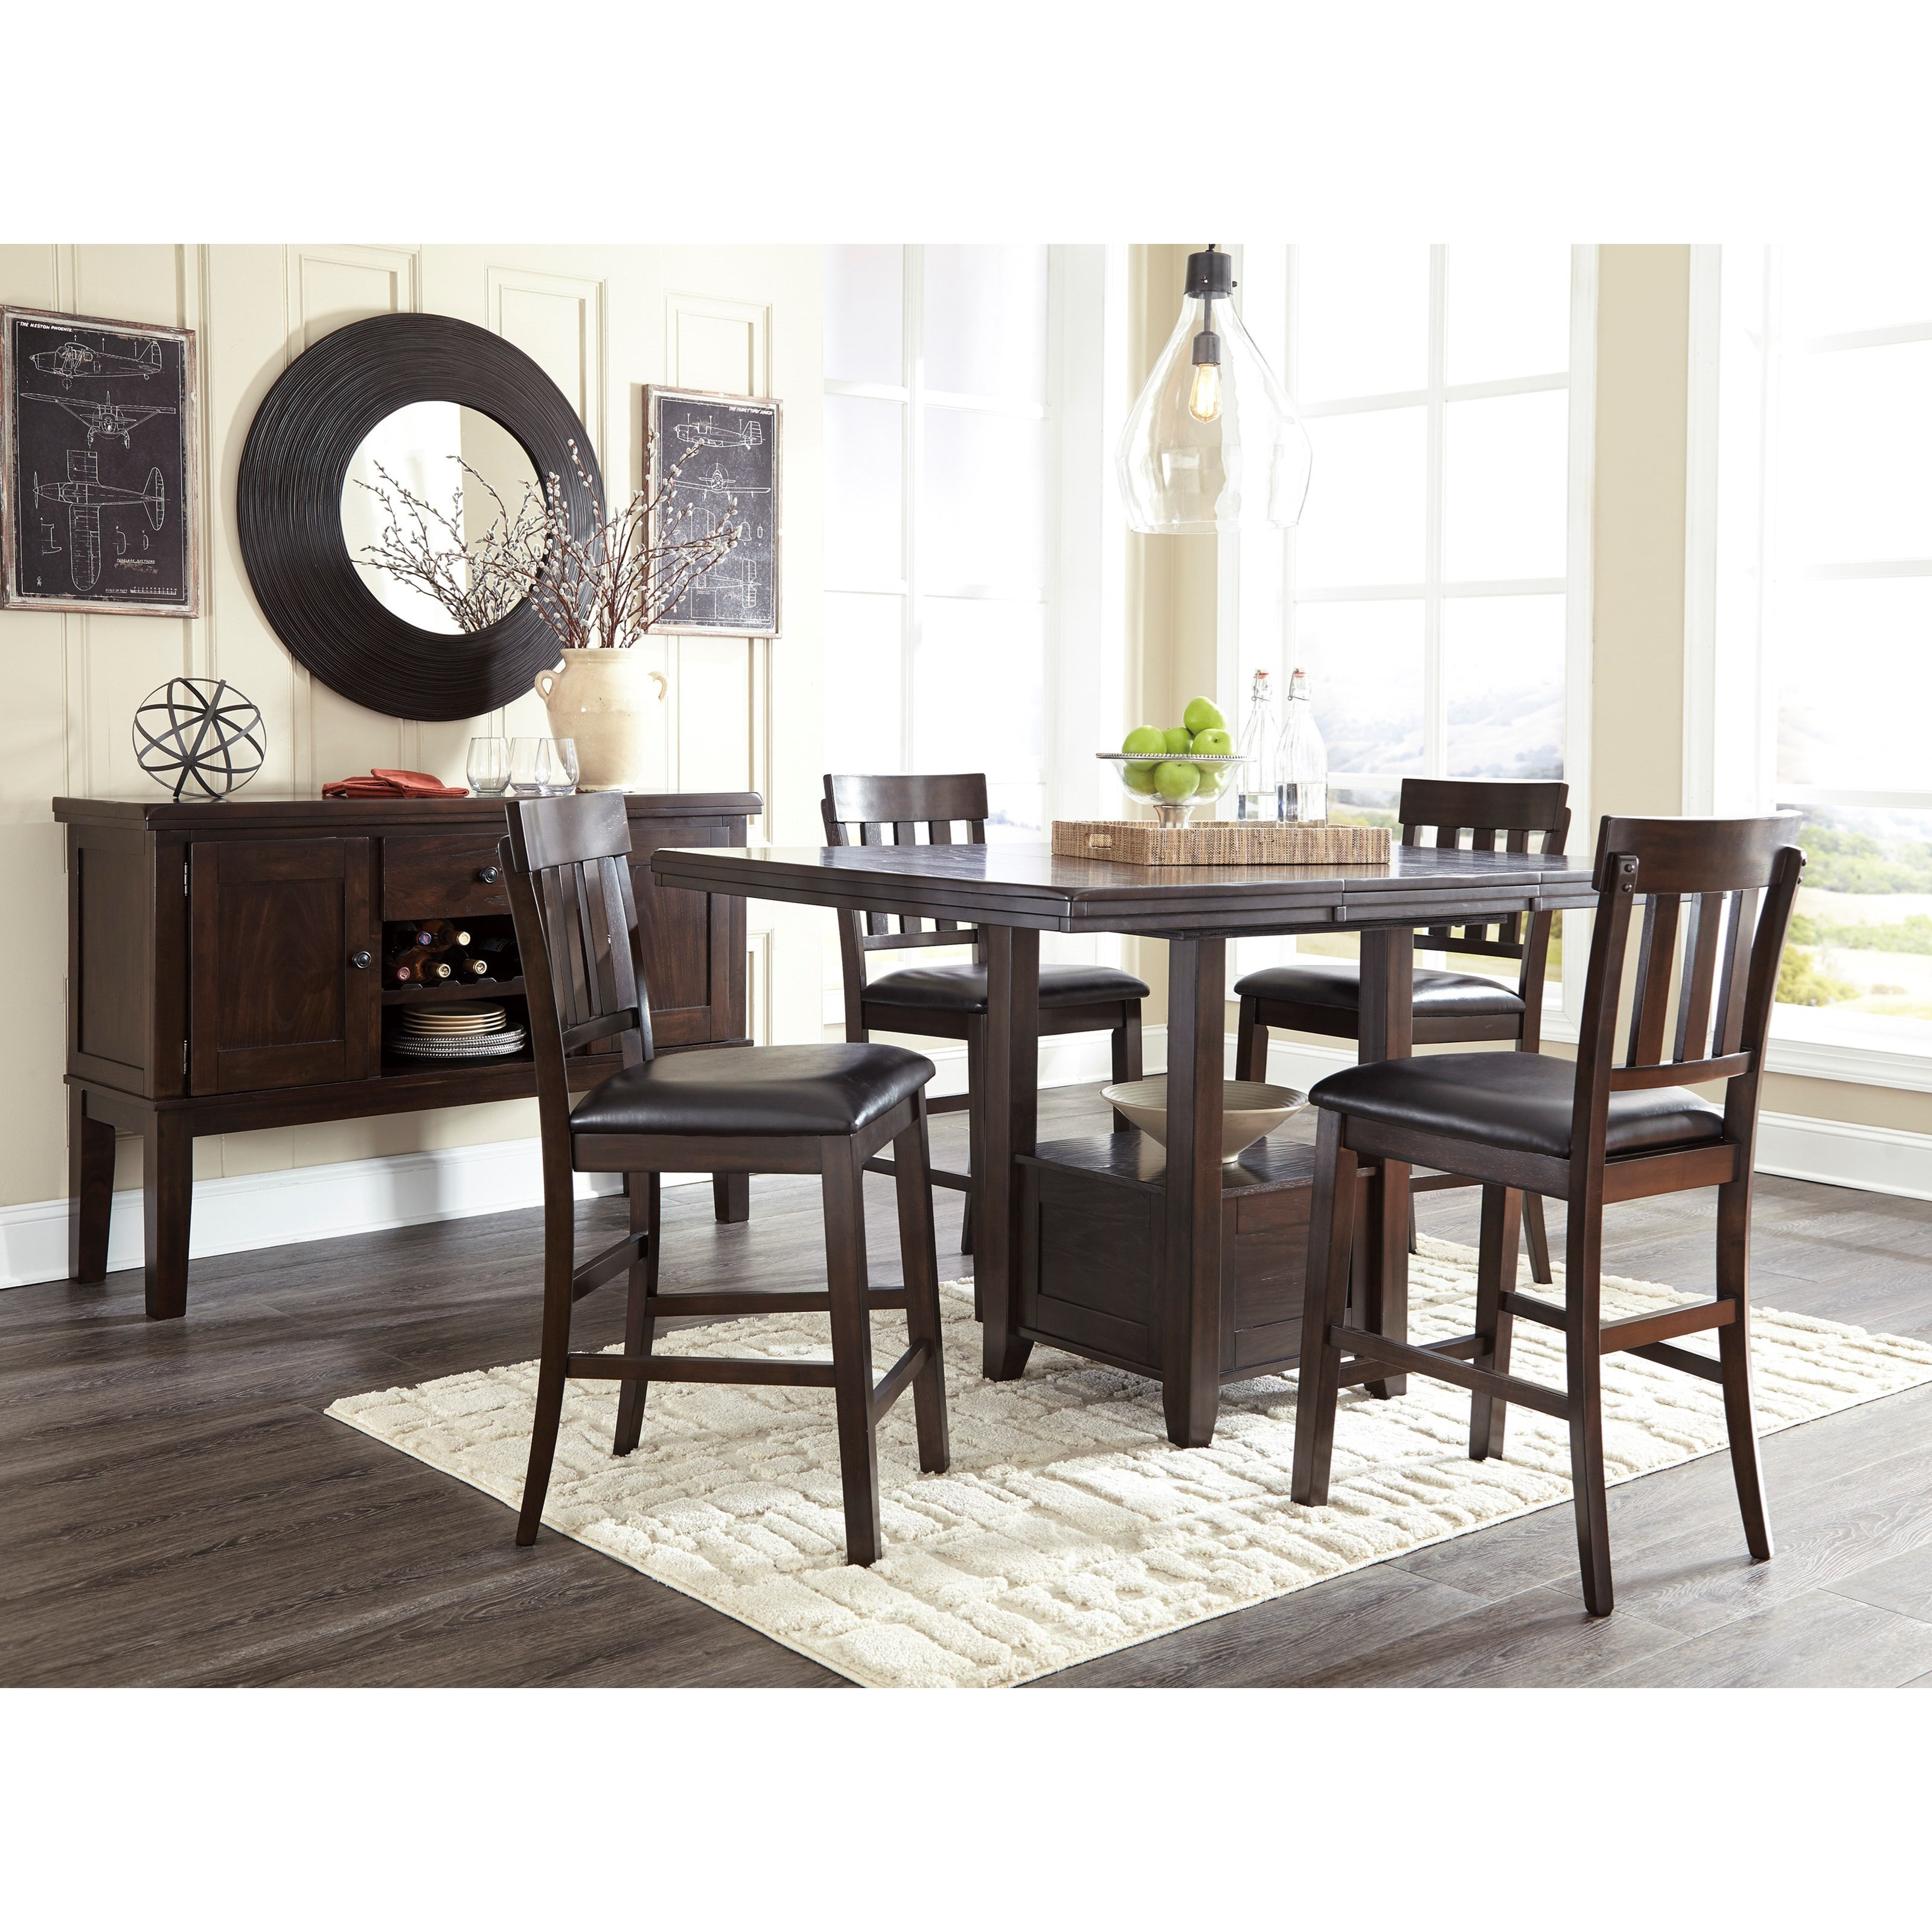 Signature design by ashley haddigan 5 piece dining room for 5 piece dining room set with bench